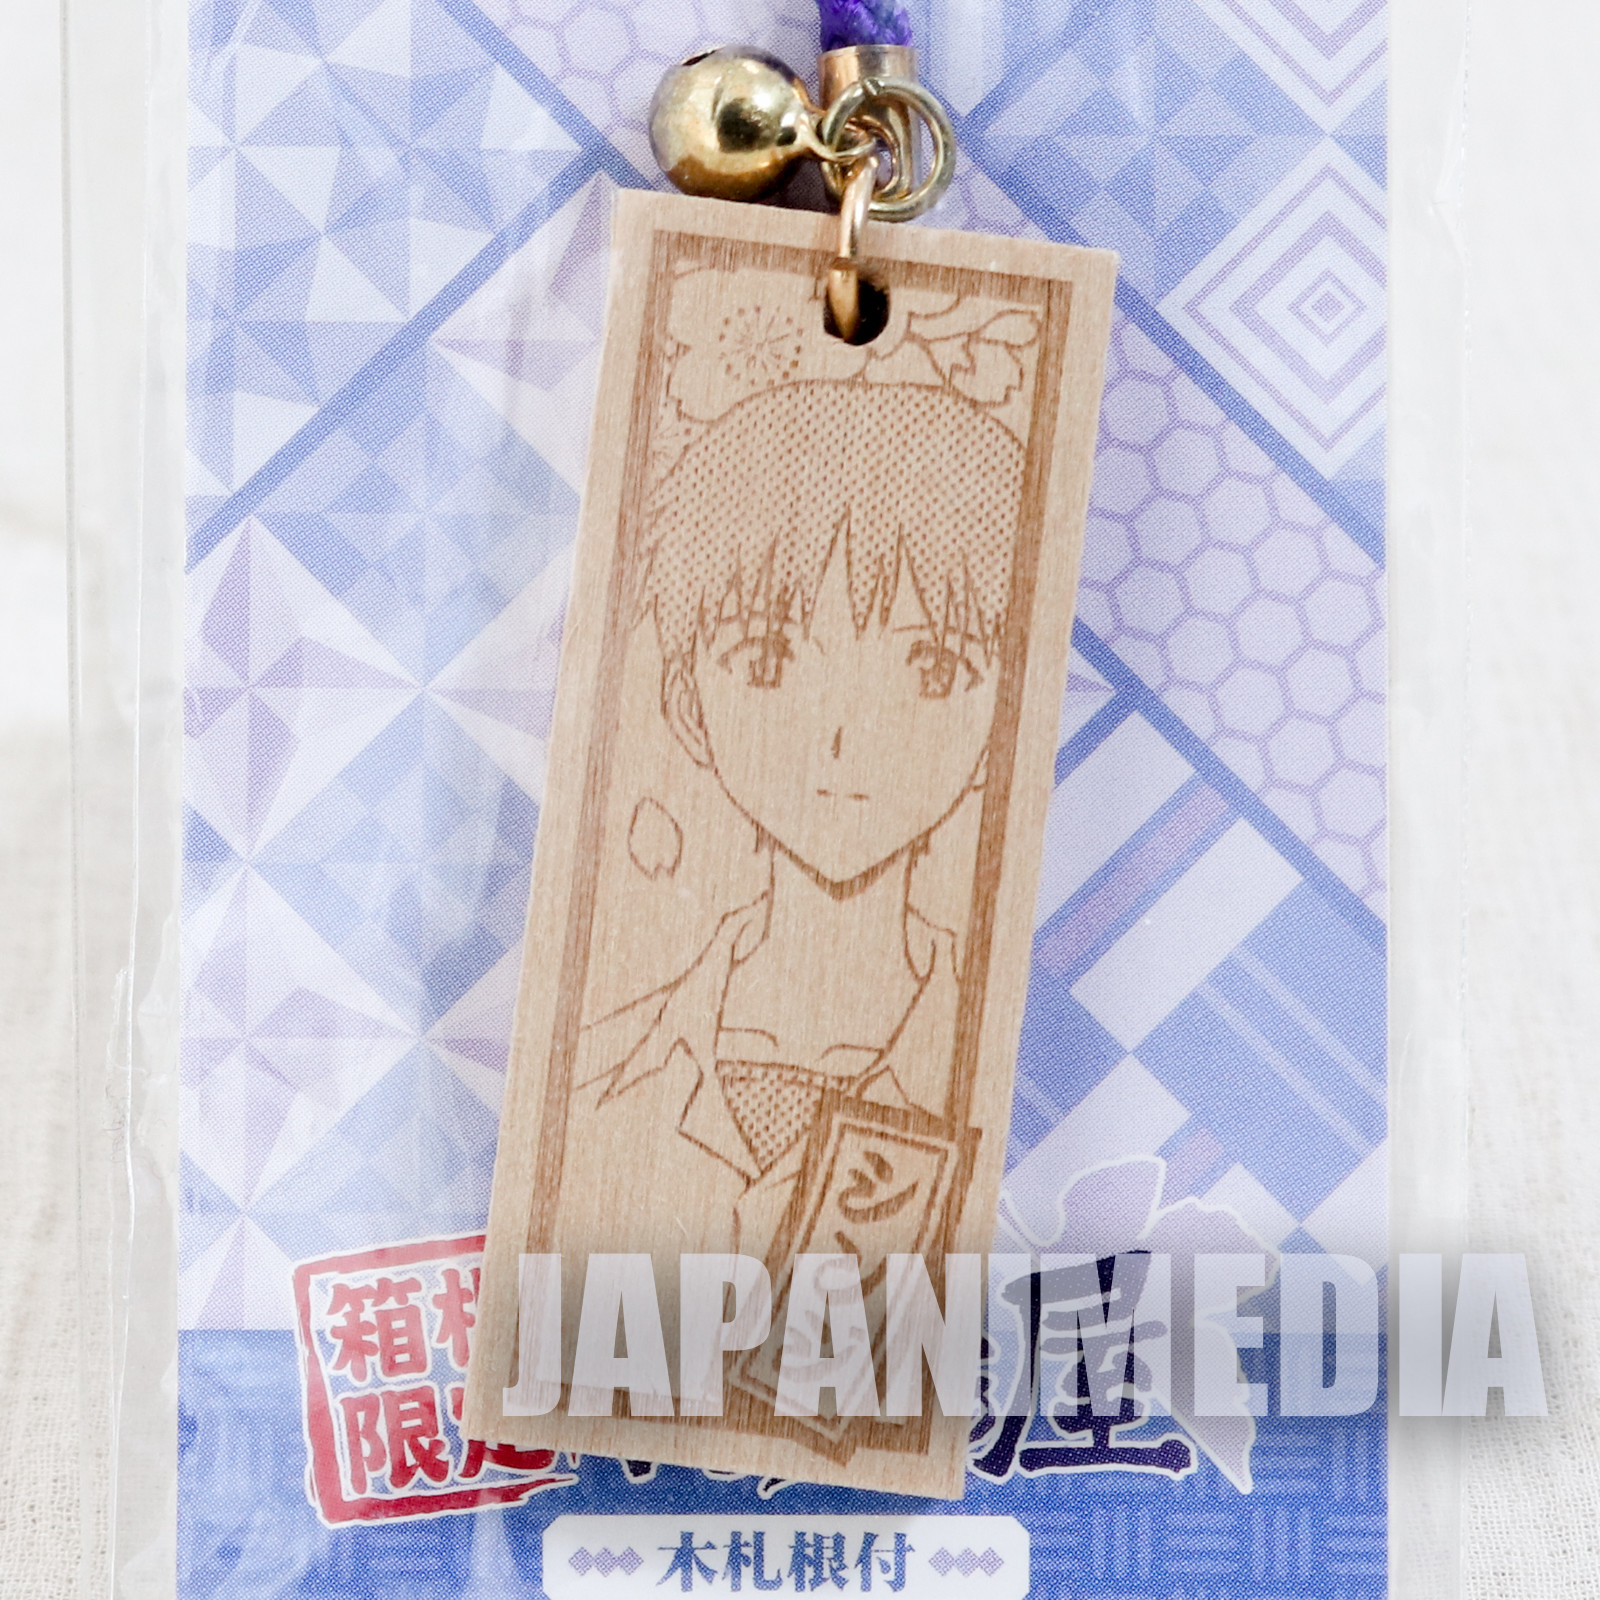 Evangelion Shinji Ikari Picture Wood Plate Strap JAPAN ANIME